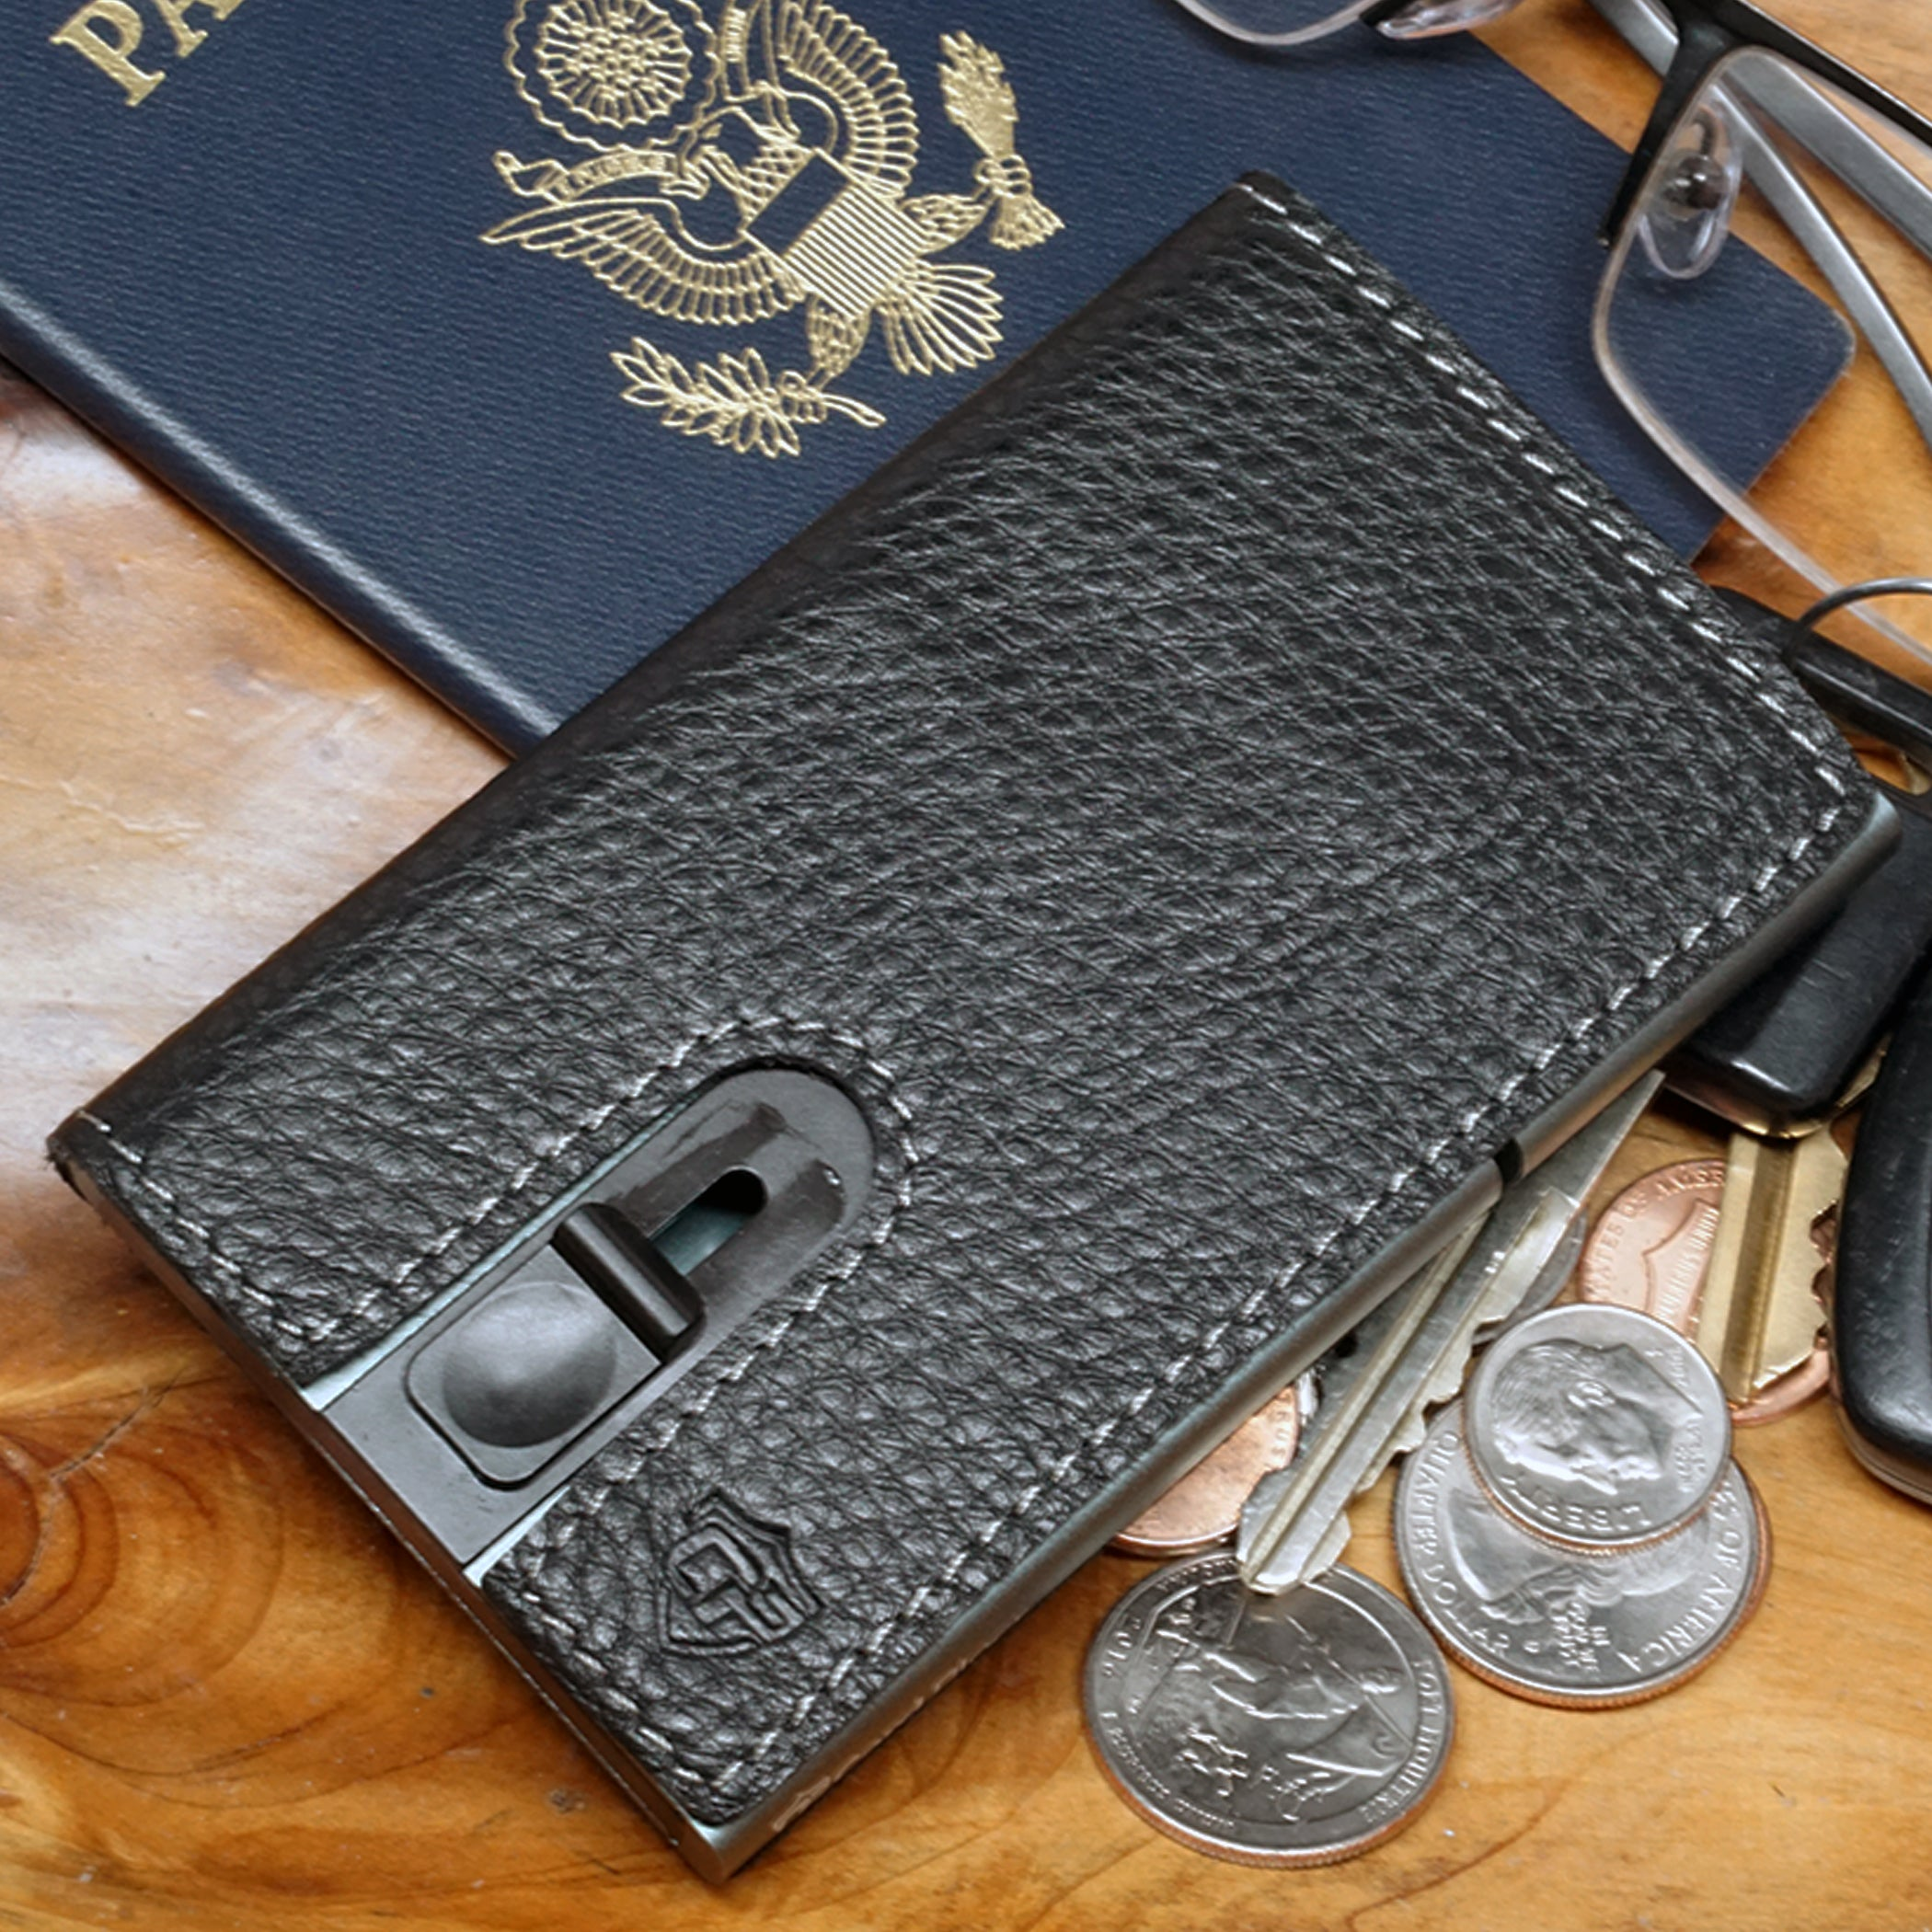 Card Blocr Credit Card Holder in Titanium Color Wrapped in Black Leather | RFID Wallet Travel